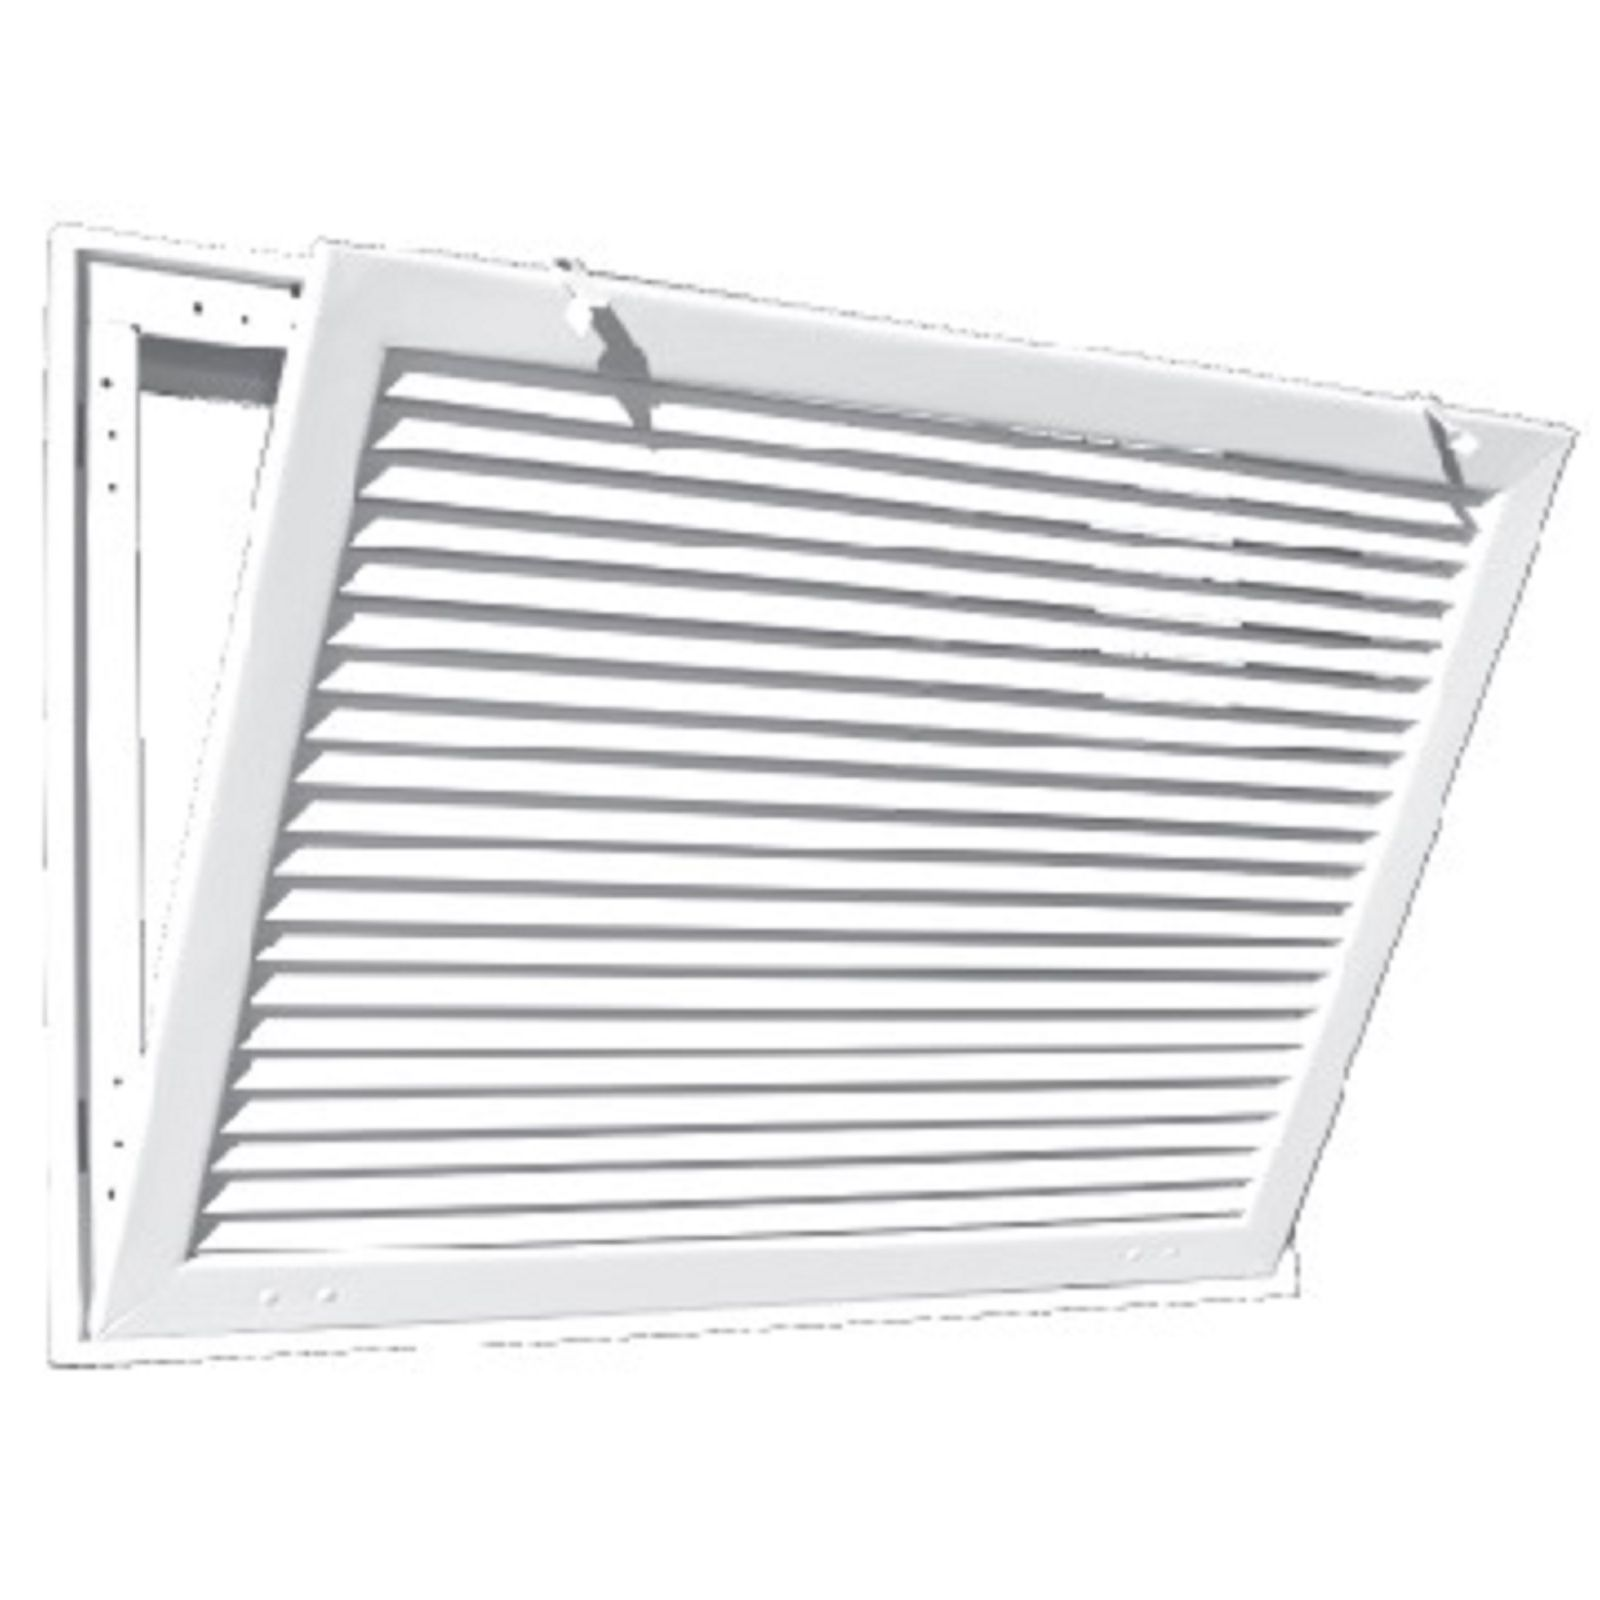 "TRUaire A290 20X20 - Aluminum Fixed Bar Return Air Filter Grille, White, 20"" X 20"""